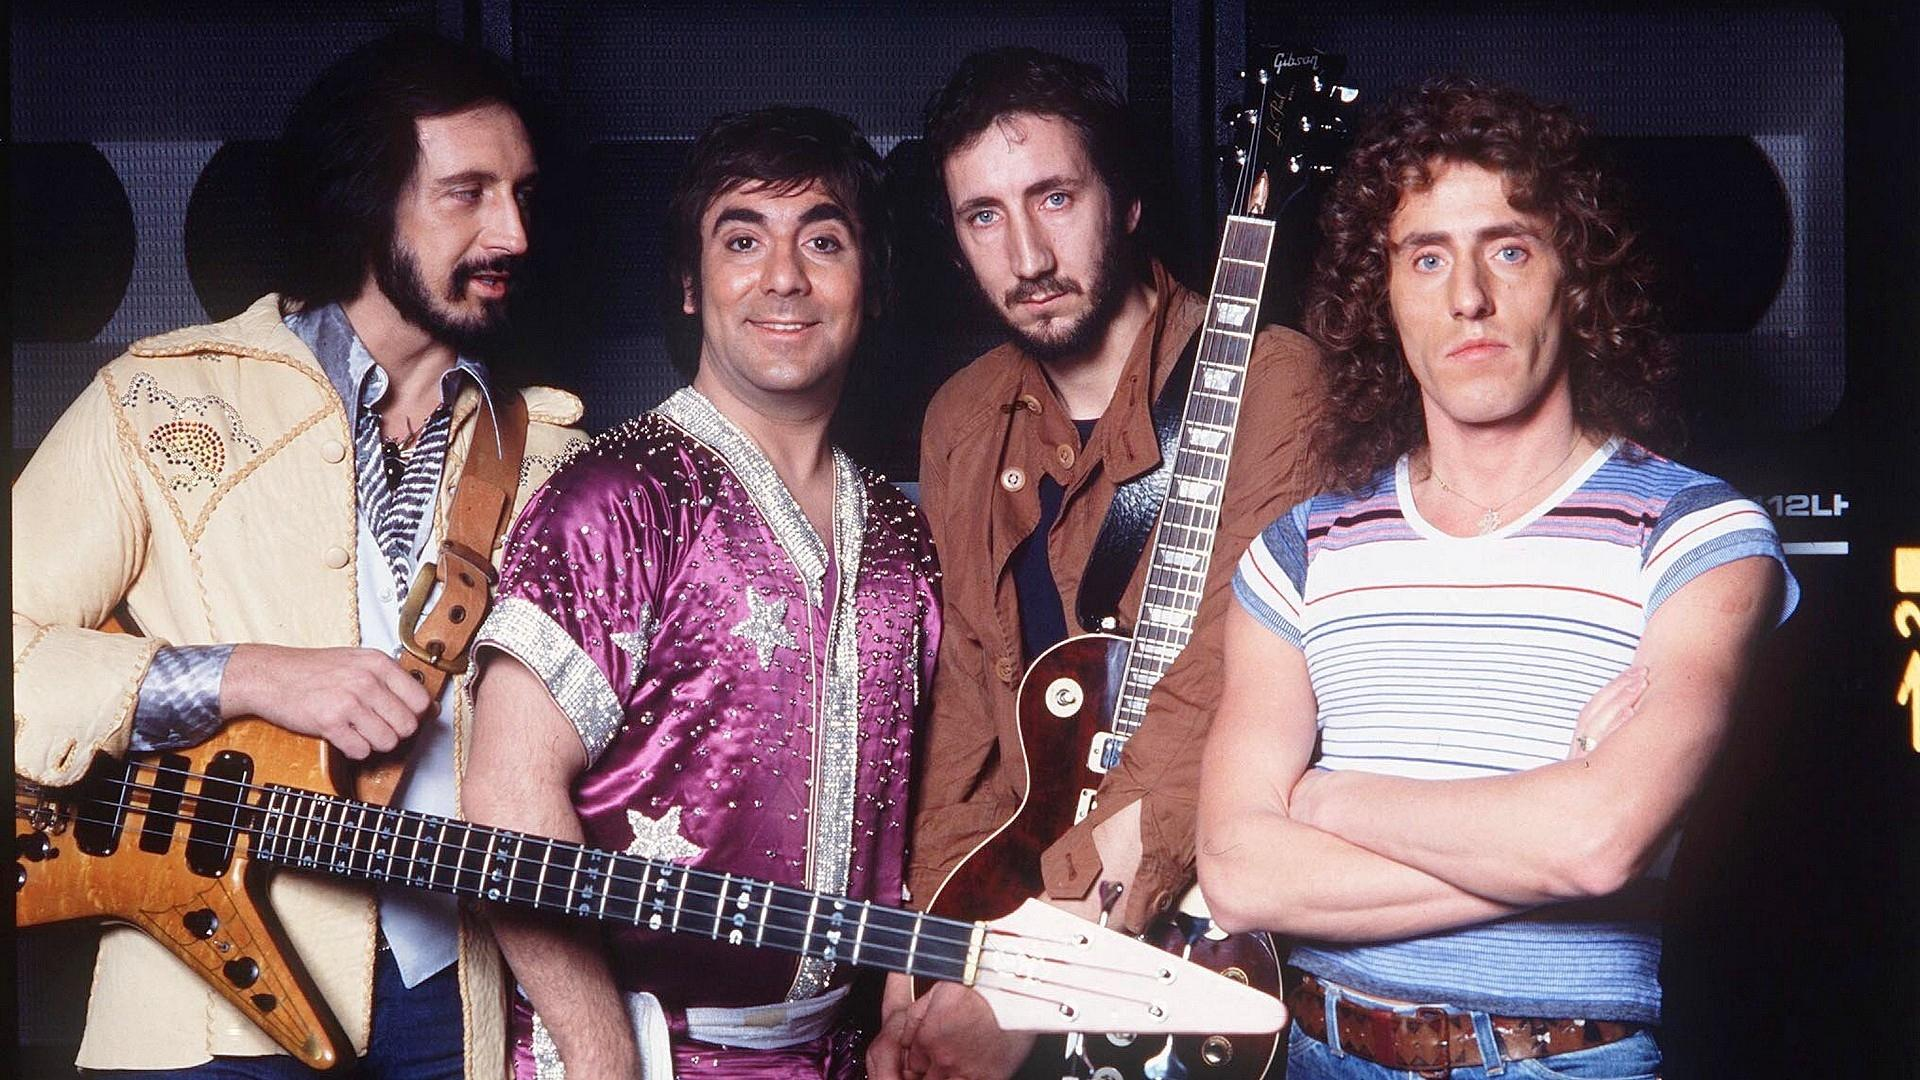 Download wallpapers 1920x1080 the who, guitars, youth, band, smile hd